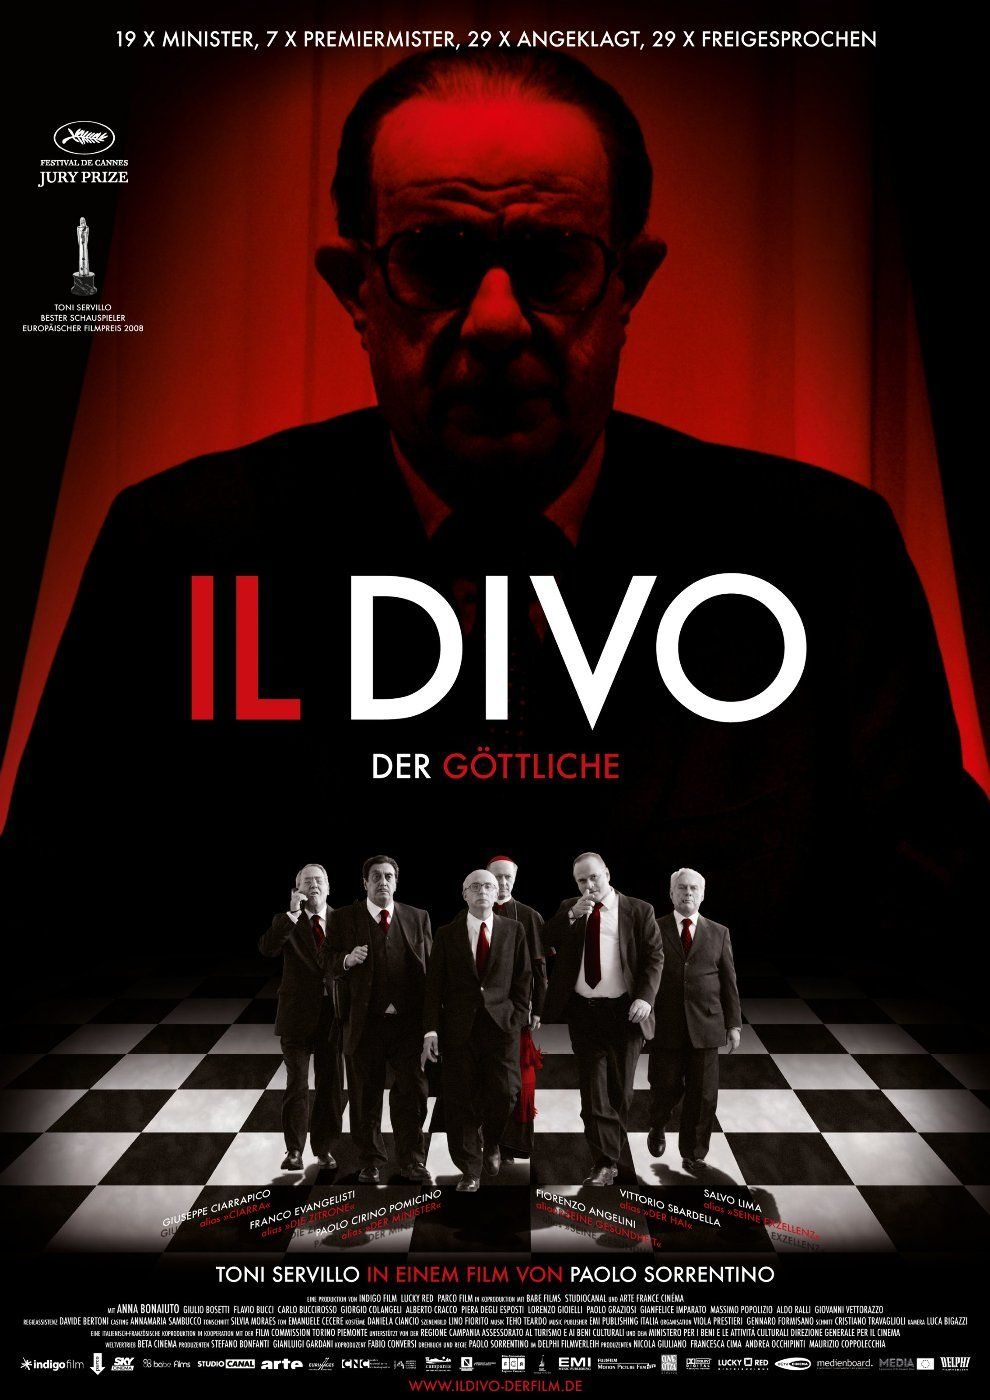 Il divo 2008 by paolo sorrentino recent films movie creator film posters e cinema posters - Andreotti il divo ...